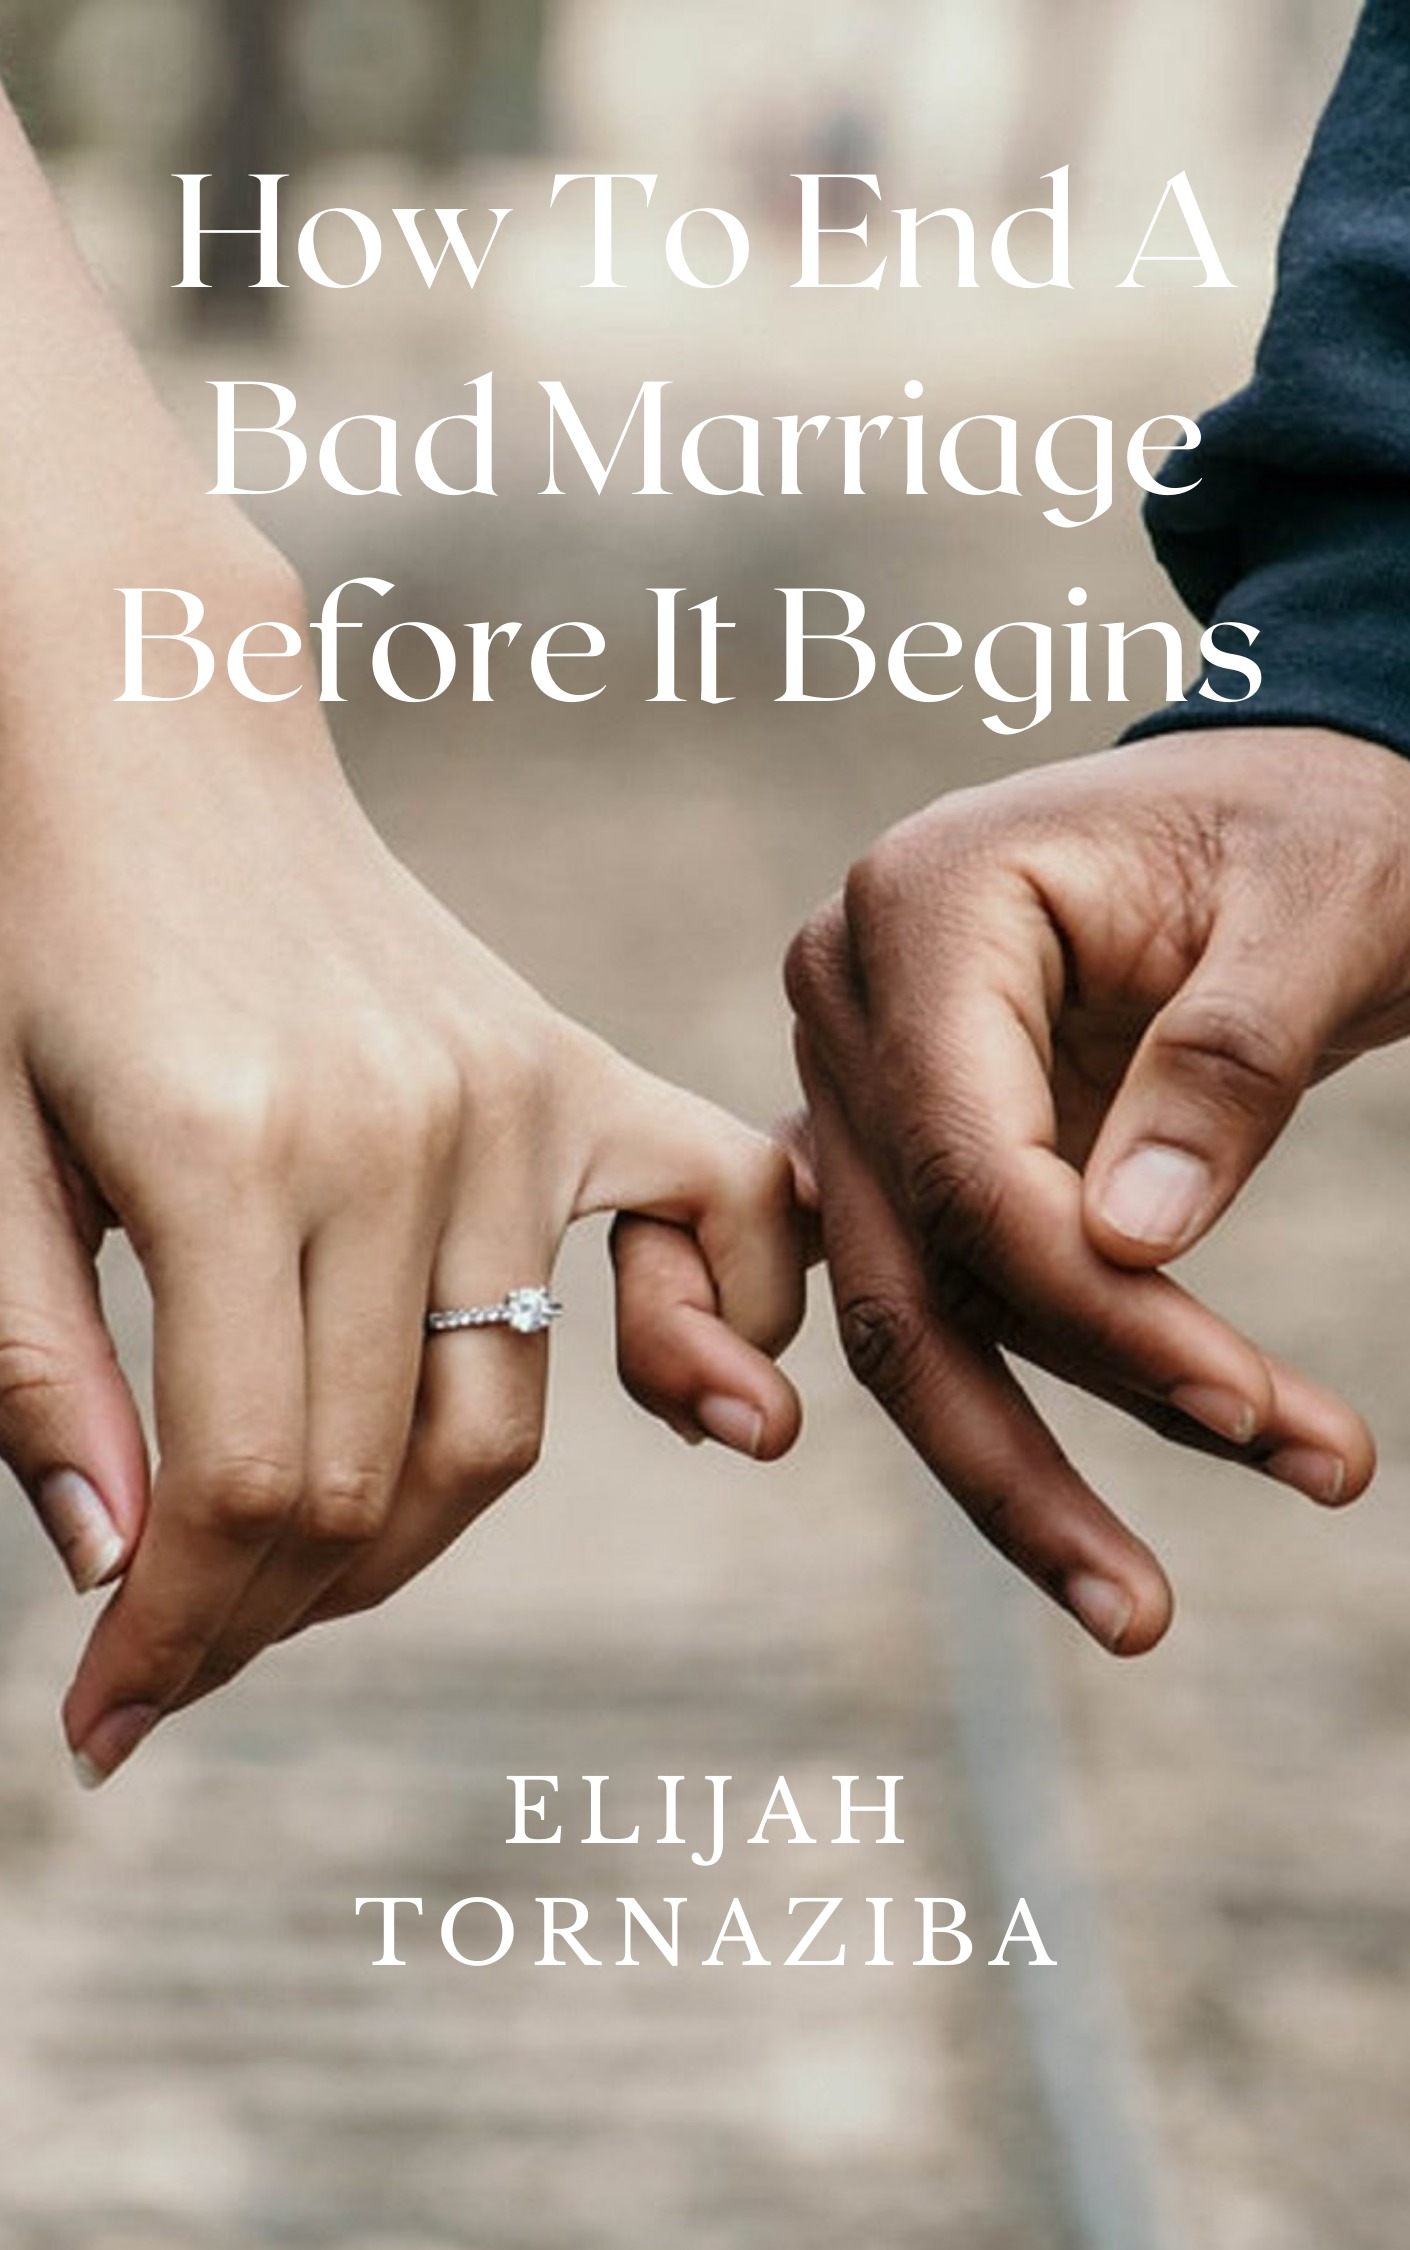 How To End A Bad Marriage Before It Begins